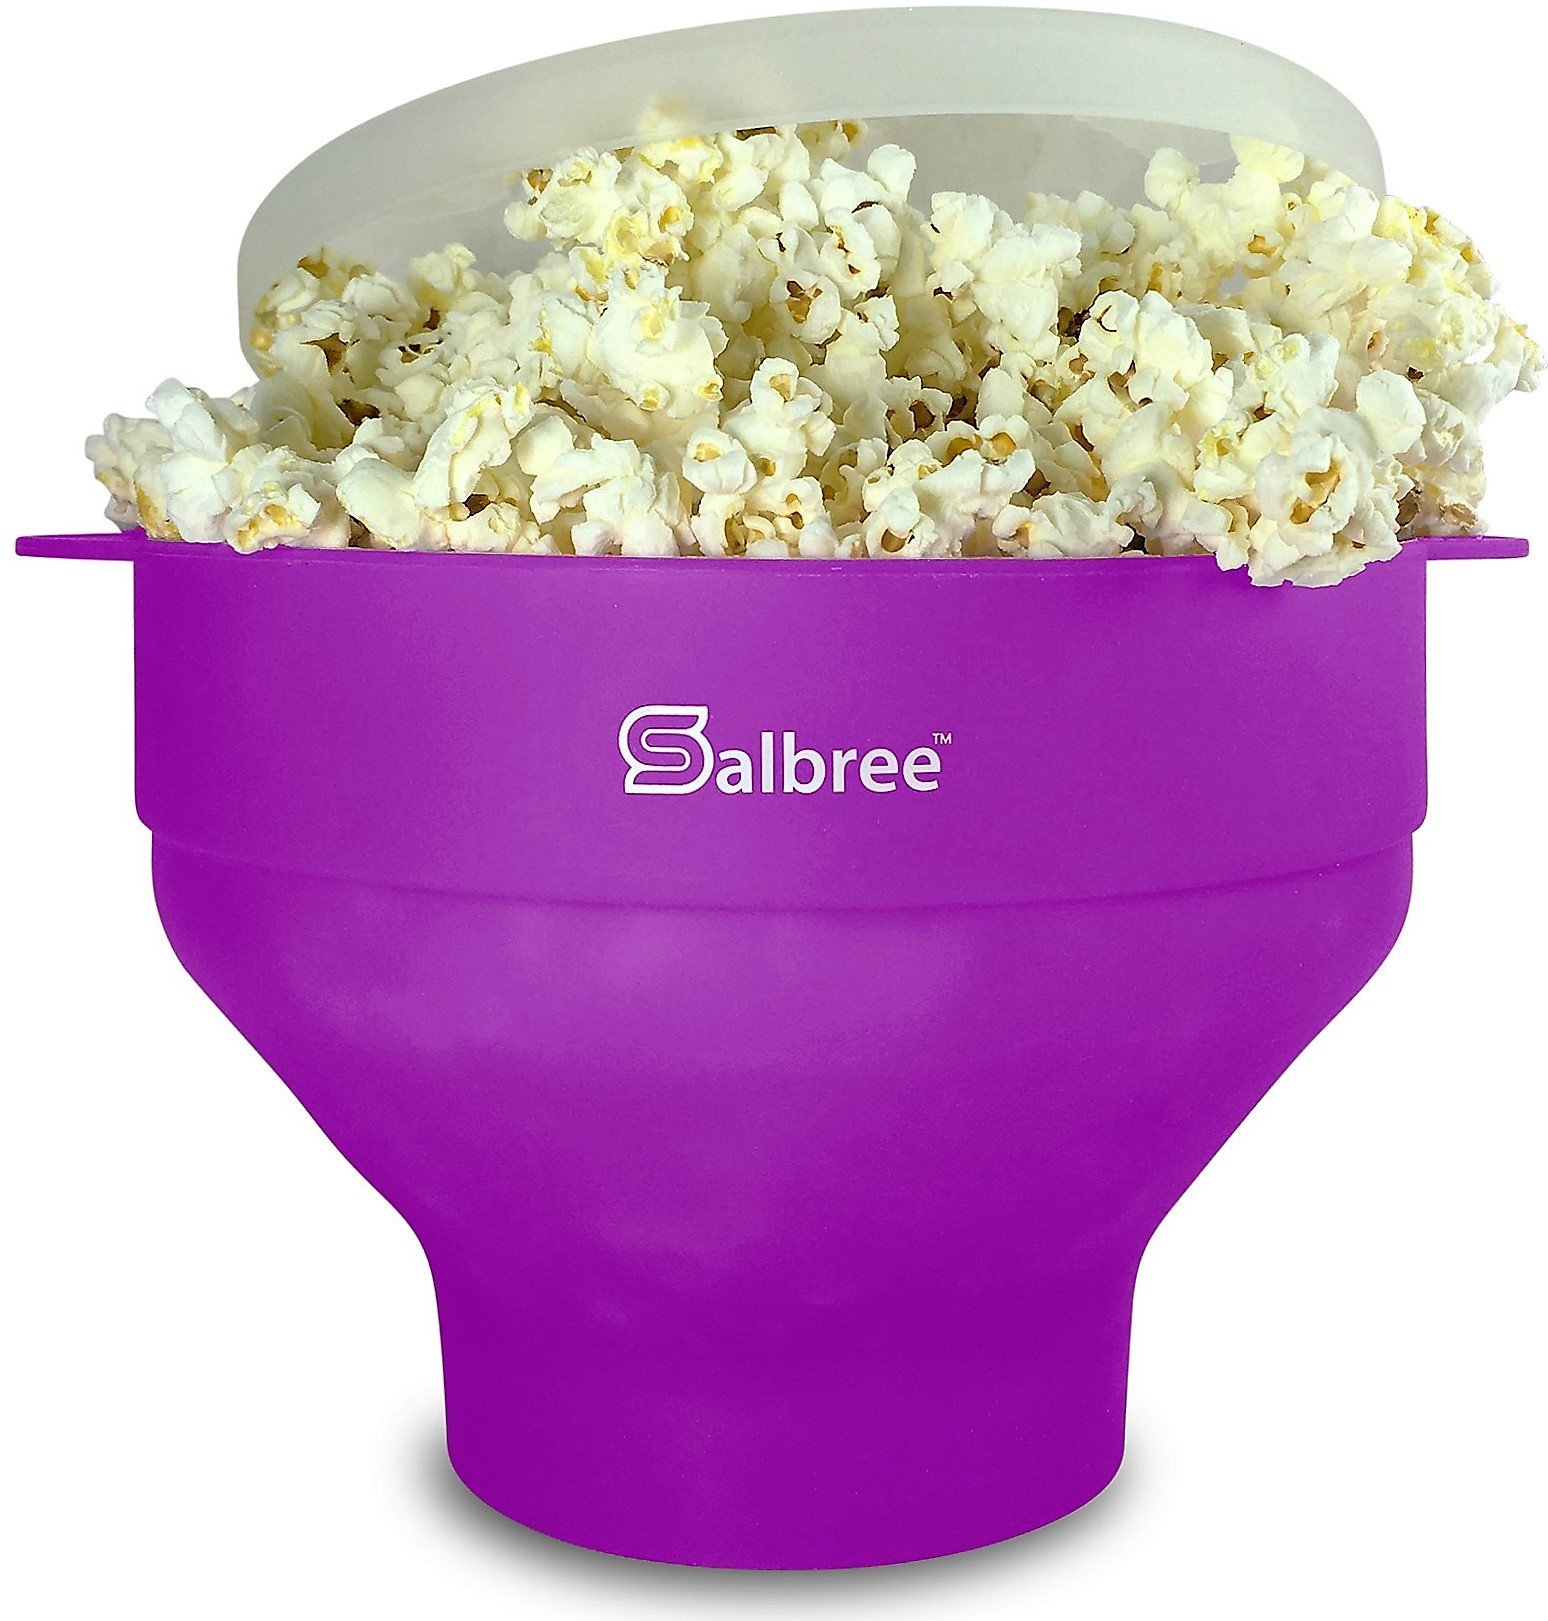 The Original Salbree Microwave Popcorn Popper, Silicone Popcorn Maker, Collapsible Bowl BPA Free - 14 Colors Available (Purple)